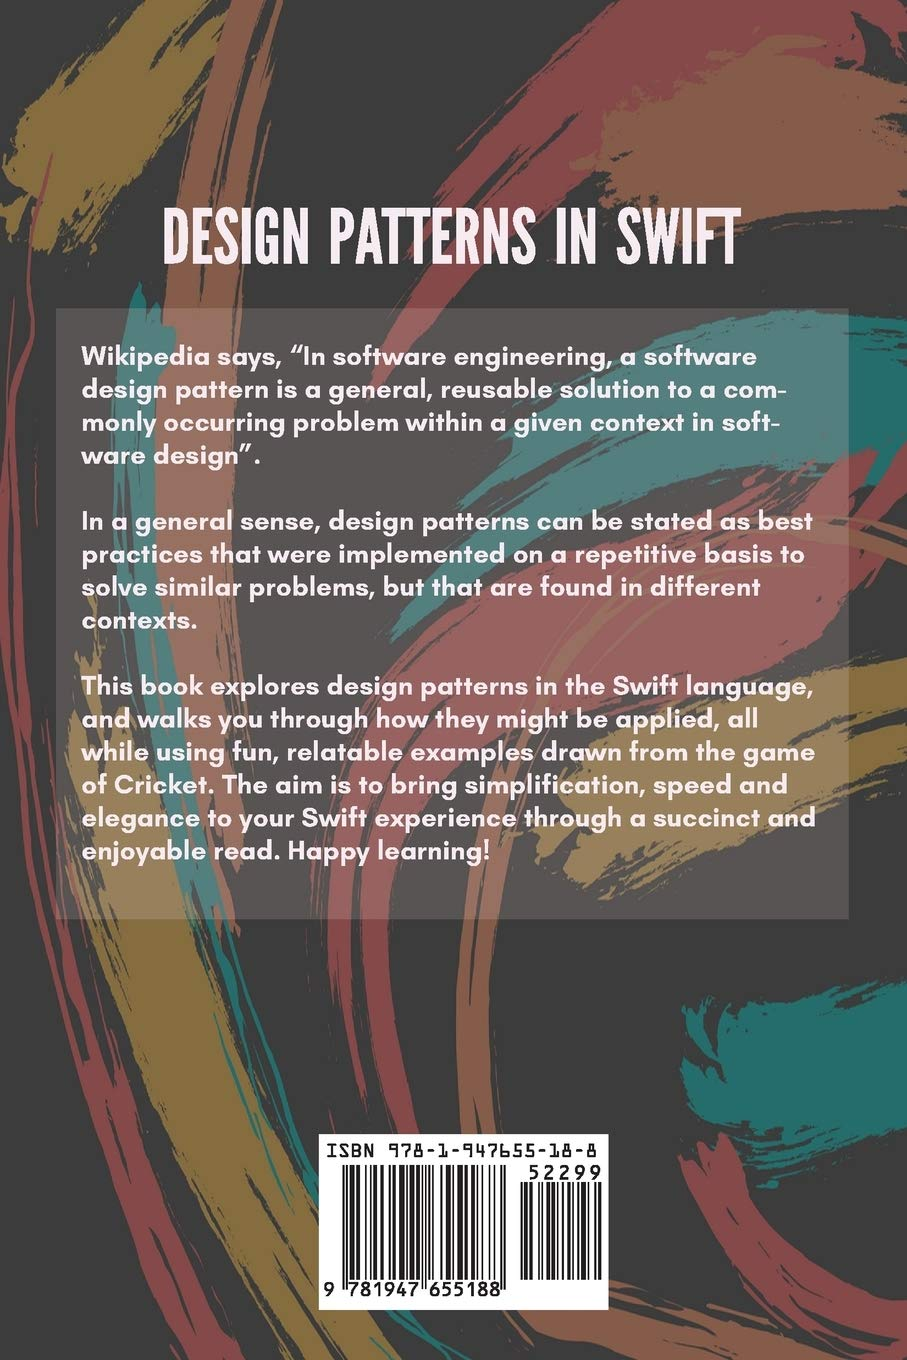 Design Patterns In Swift A Different Approach To Coding With Swift Krishna Vamshi 9781947655188 Amazon Com Books